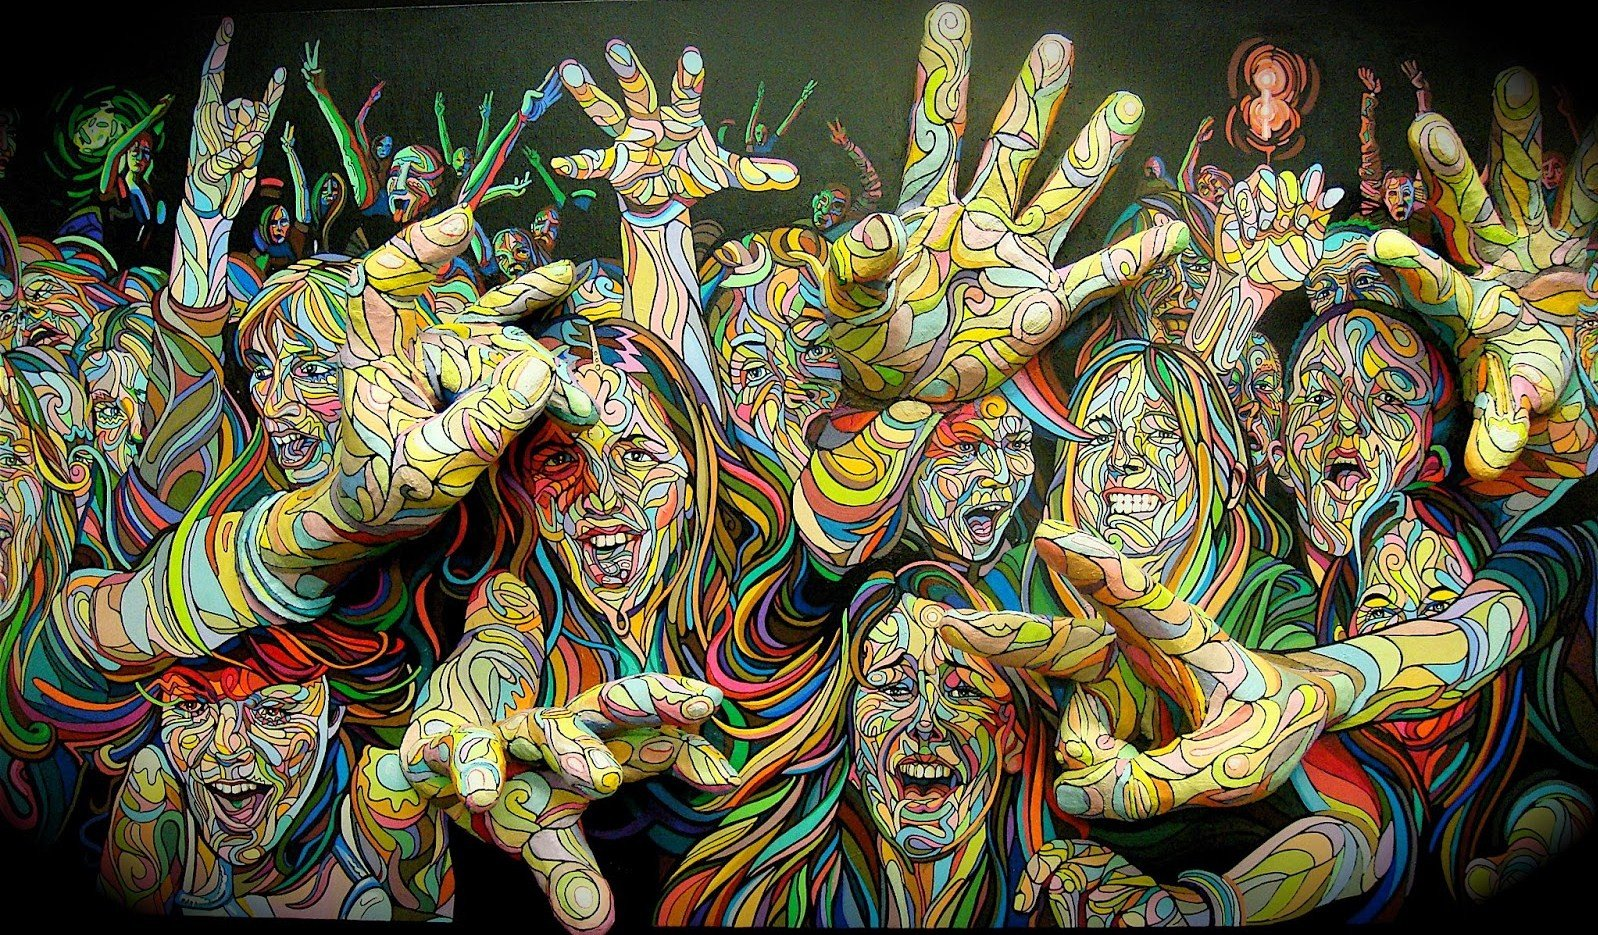 a study of the relation between psychedelic drug use and mental health Psychedelics and mental health: a population study  psychedelics and mental health: a population study  association between psychedelic use and mental health.